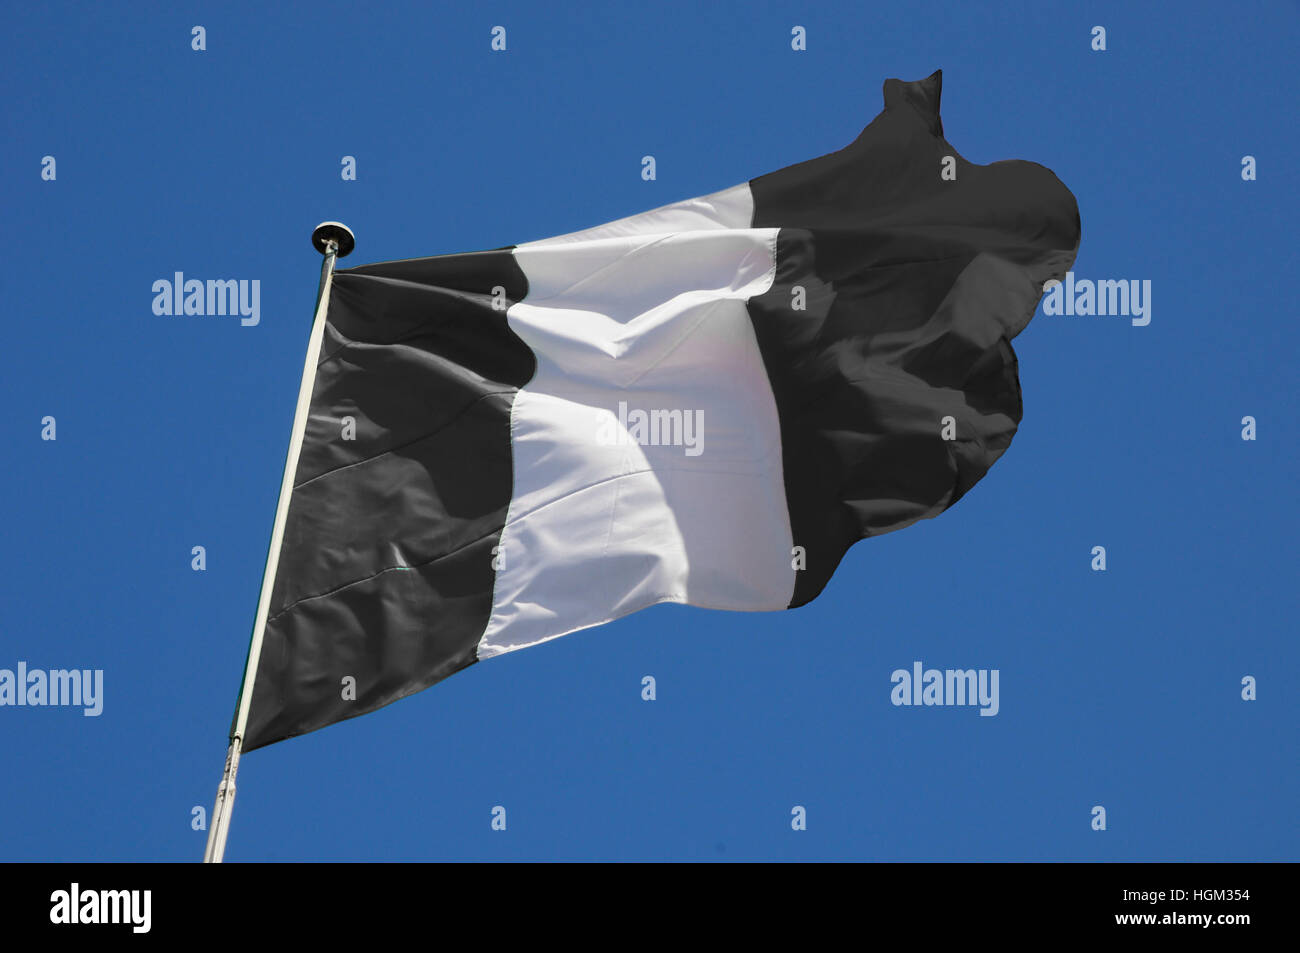 Black and White striped flag fluttering in a brisk breeze against a bright blue sky. - Stock Image